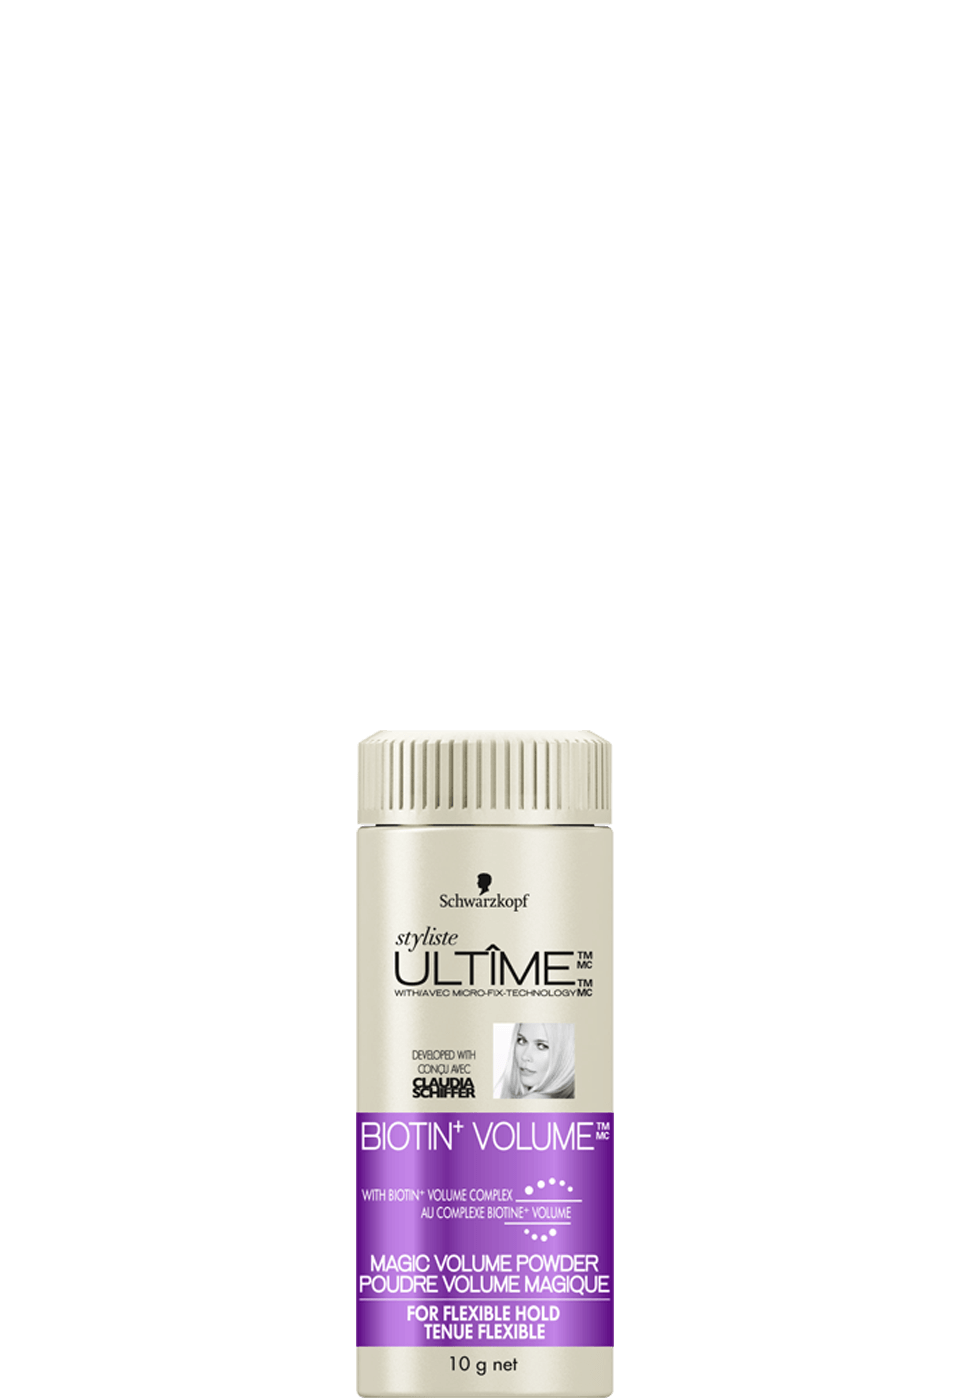 styliste_ultime_ca_biotin_powder_970x1400